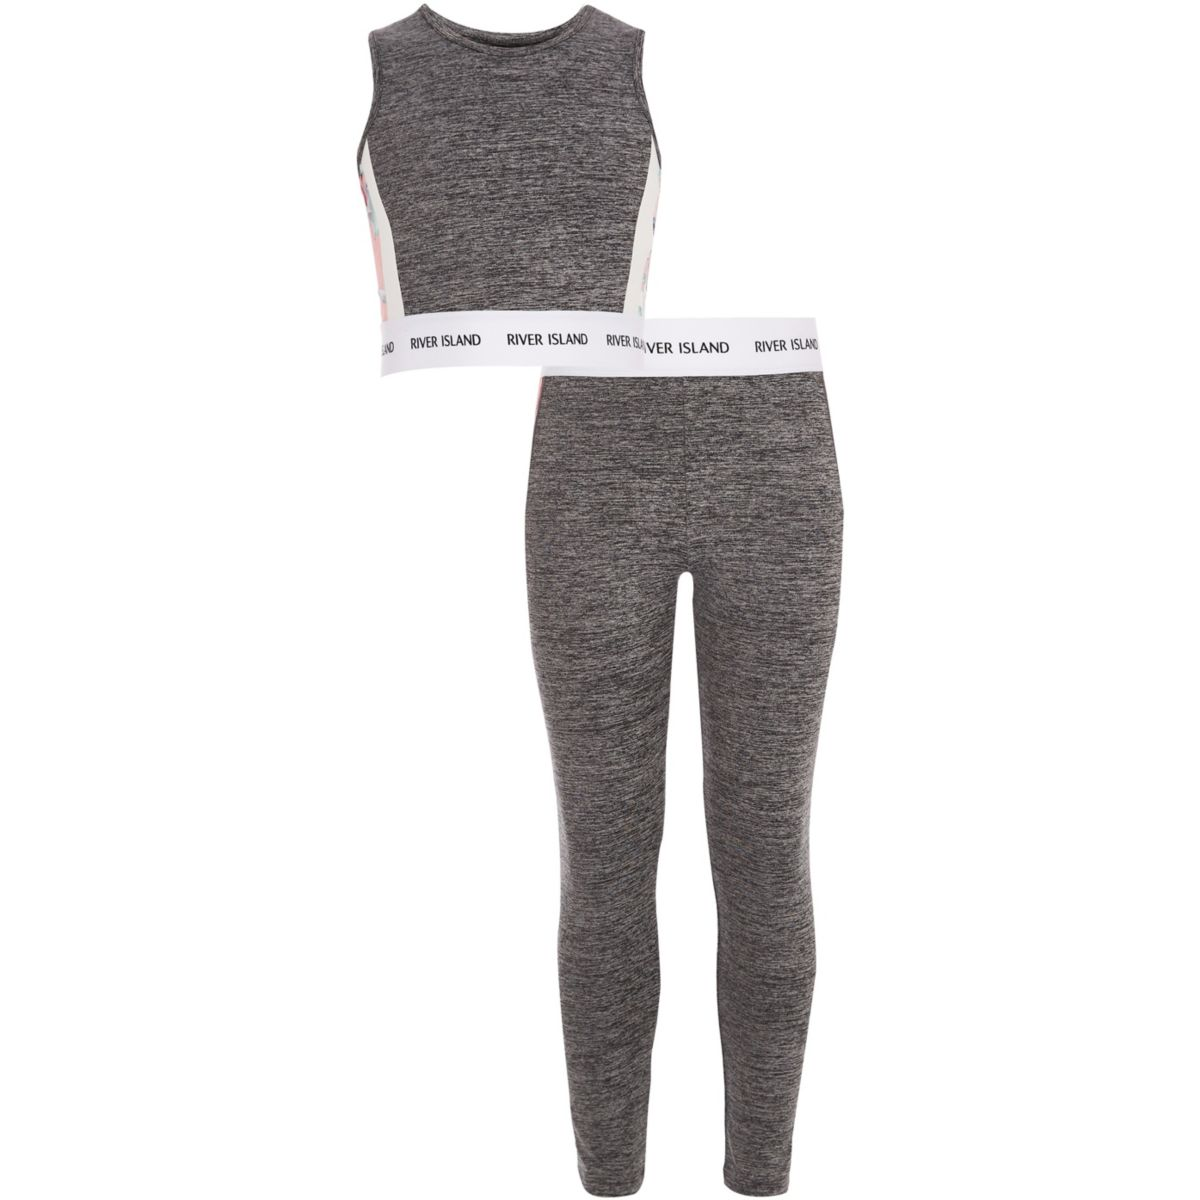 Girls RI Active grey floral crop top outfit